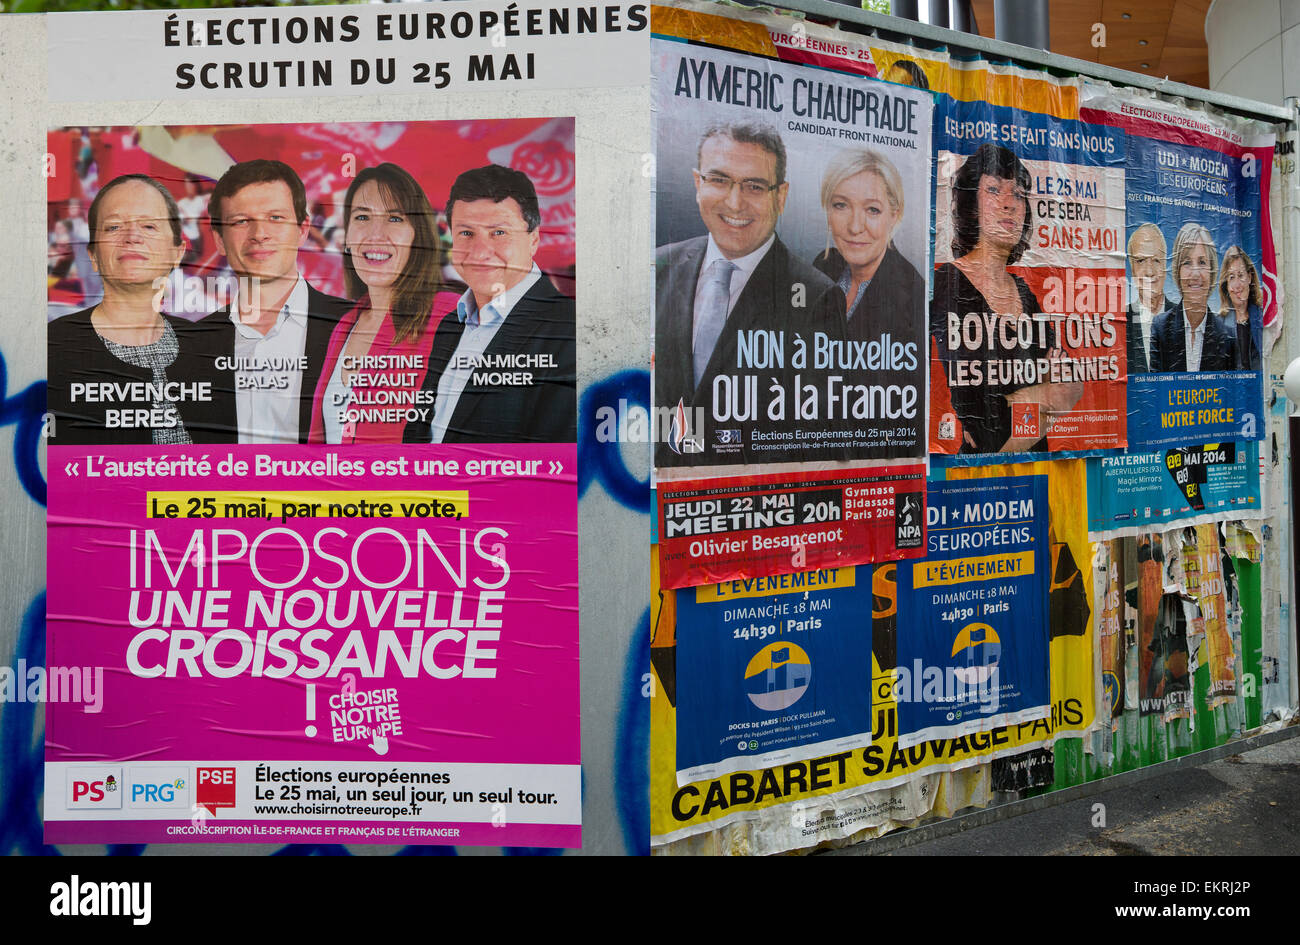 Posters for French candidates running in elections for the European Parliament in Paris, France 2014 - Stock Image